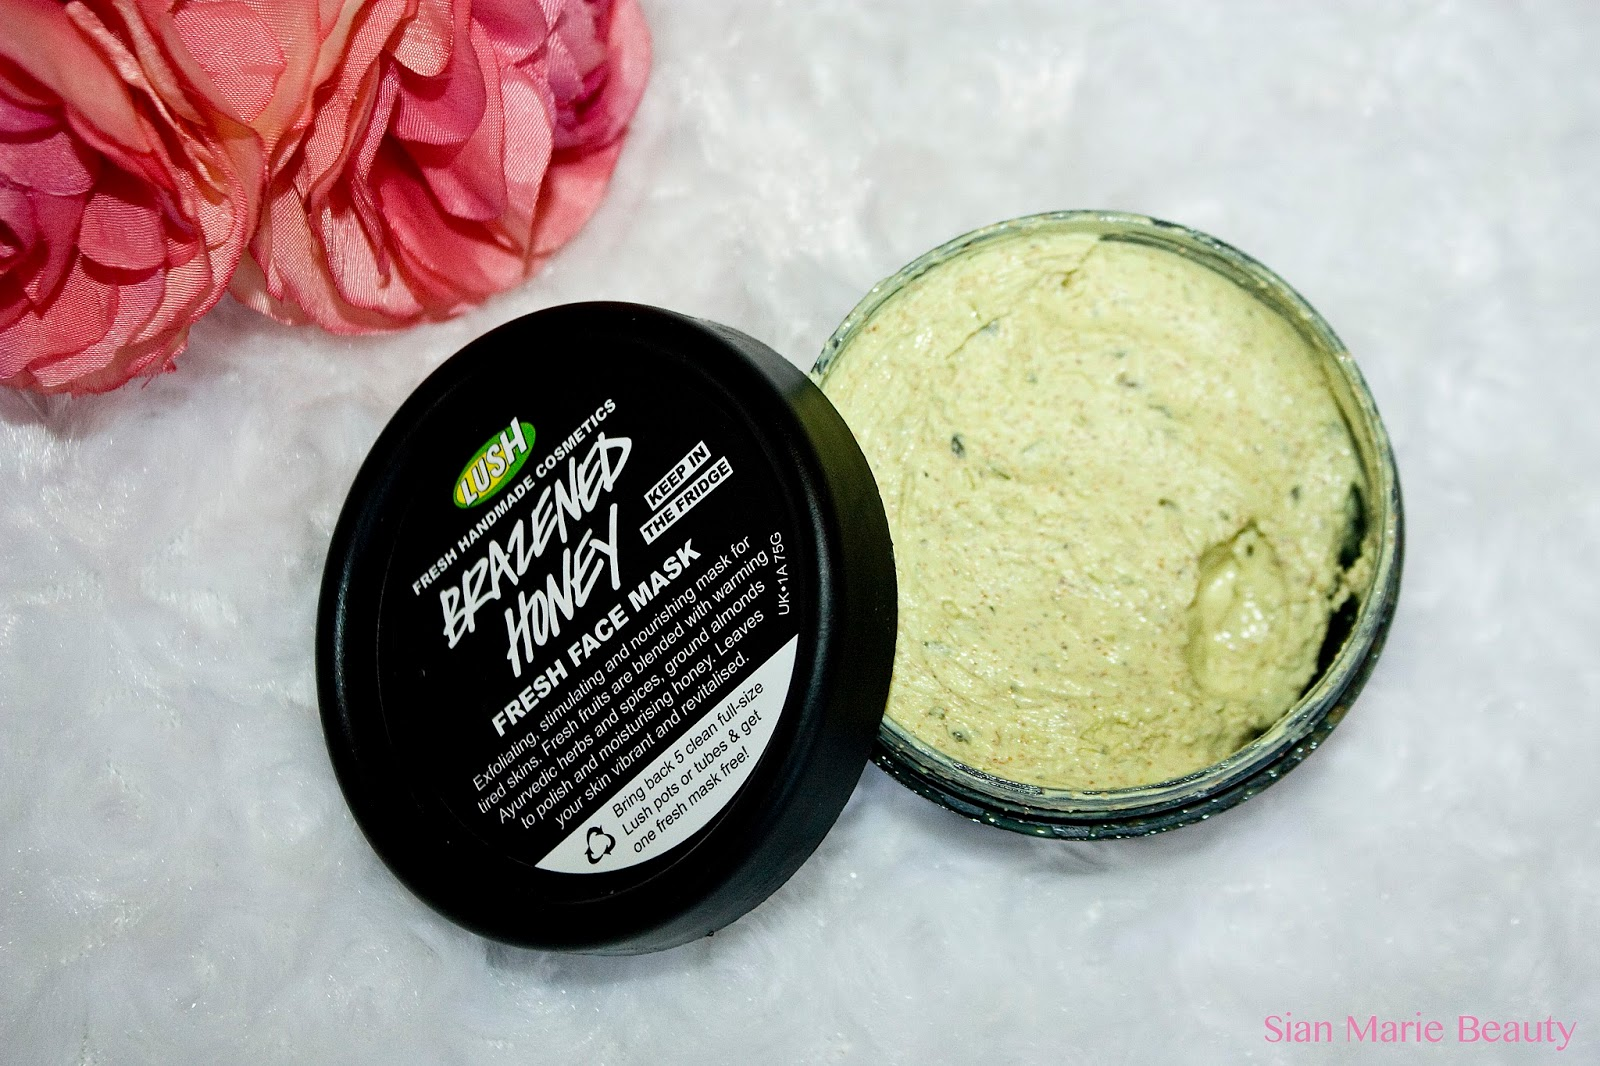 Lush Brazened Honey Brightening Face Mask